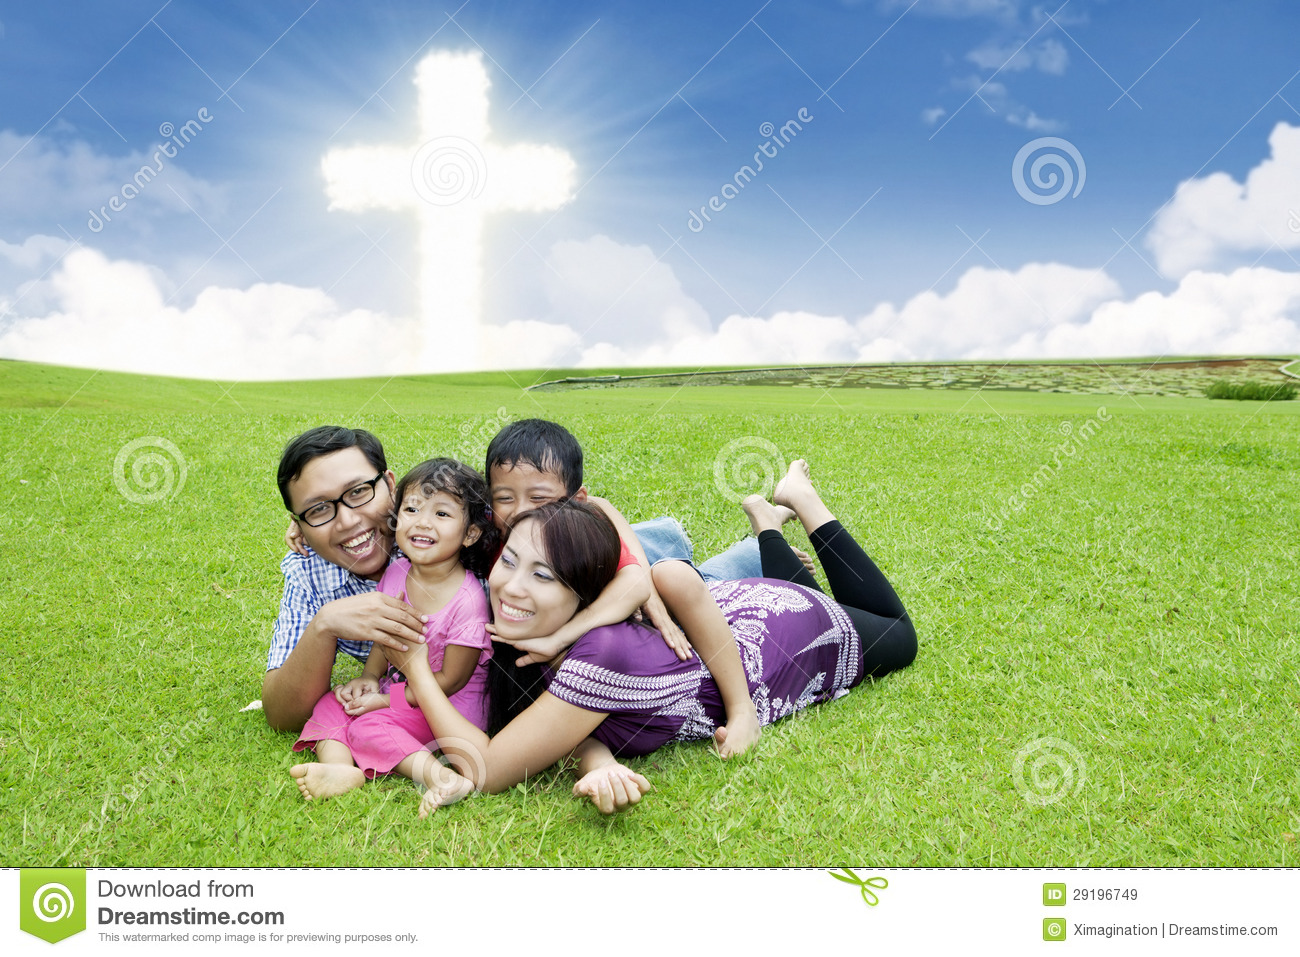 lodge grass christian personals Christian dating for free com - register and search over 40 million singles: chat  rich man looking for older man & younger man i'm laid back and get along with .